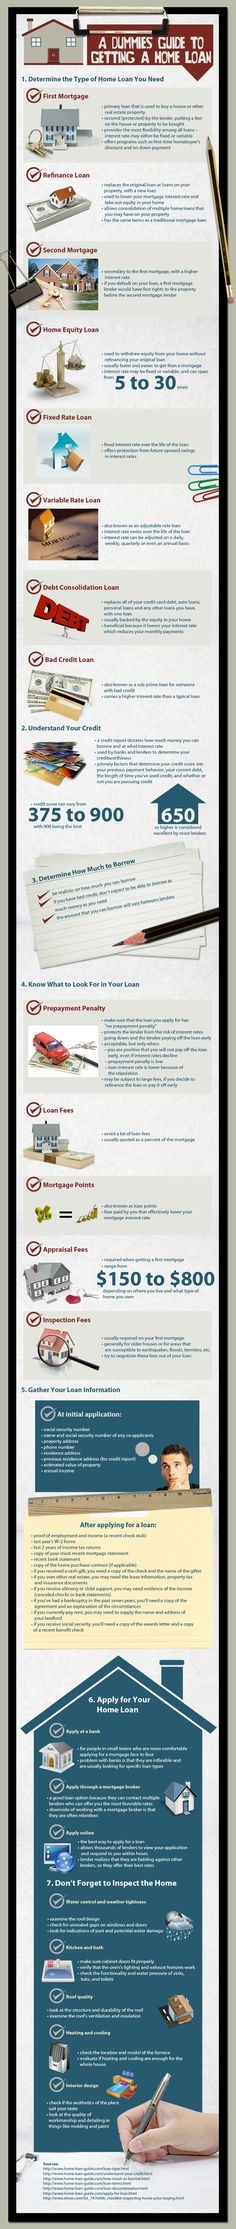 A Dummies Guide to Getting a Home Loan (Infographic) http://thelendingmag.com/ note: 650 is NOT excellent credit